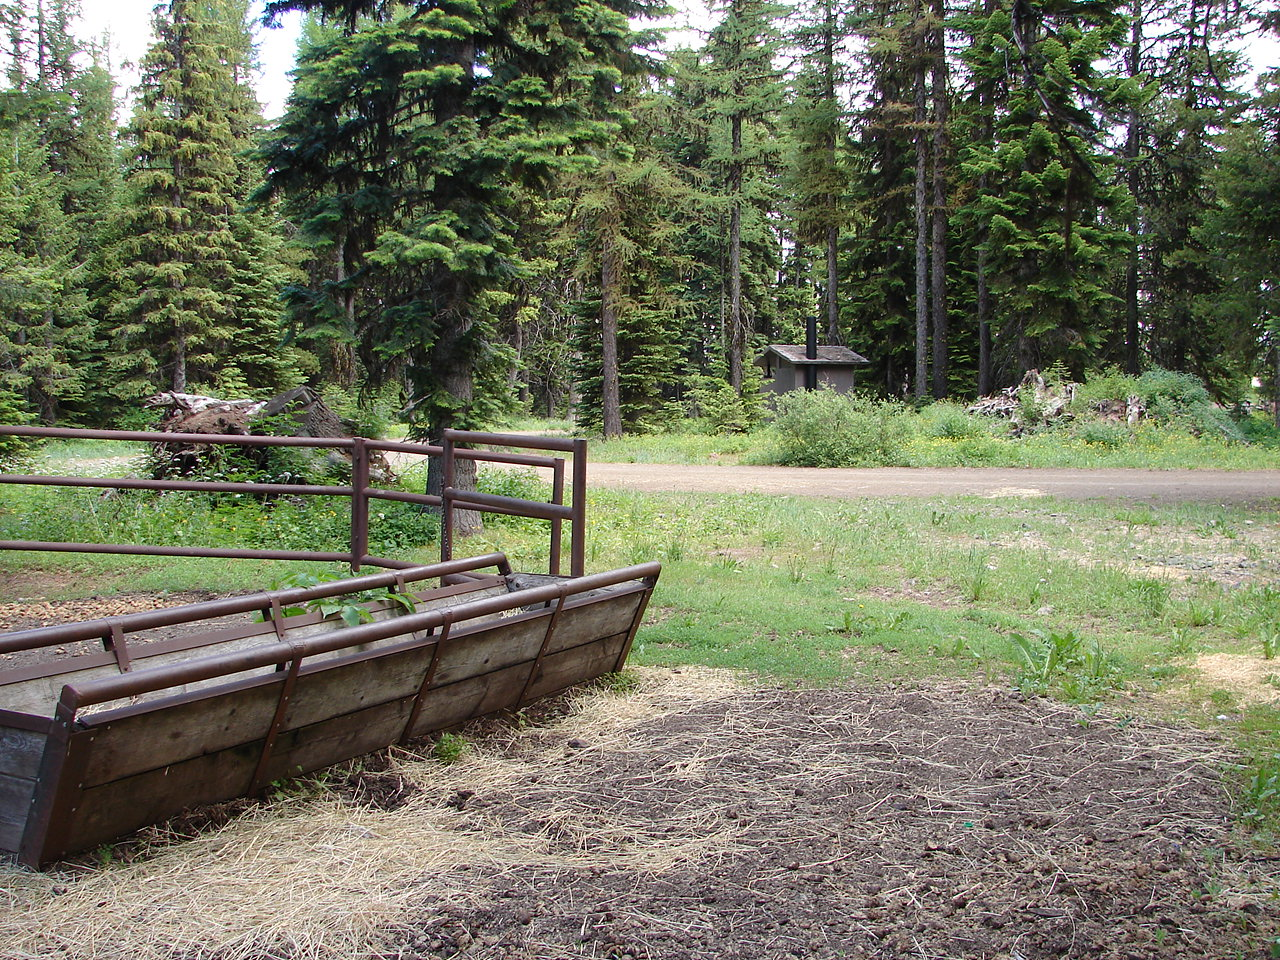 View of a livestock feeding trough with pine trees in background